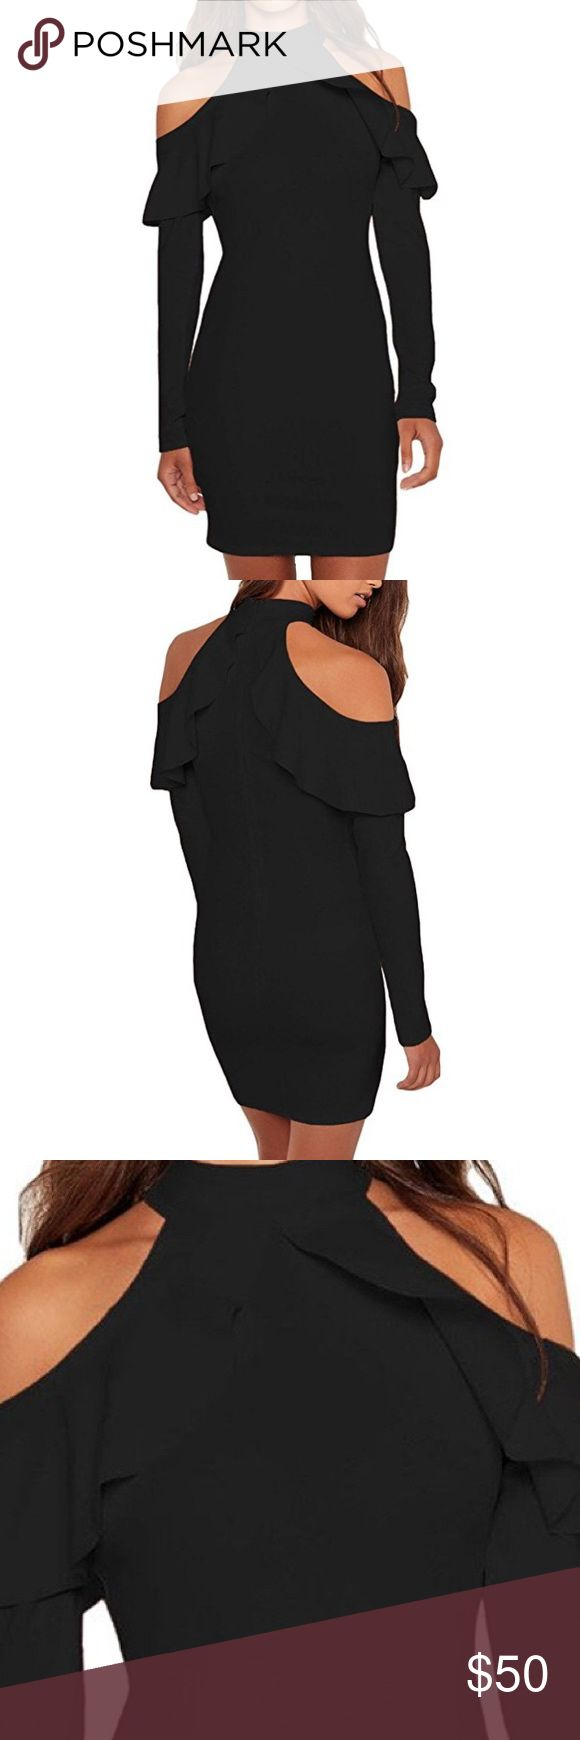 NWOT Black Cold Shoulder Long Sleeve Mini Dress Brand new little black dress with cold shoulders. Perfect for cocktail parties and a night on the town. Polyester and spandex material. Dresses Mini